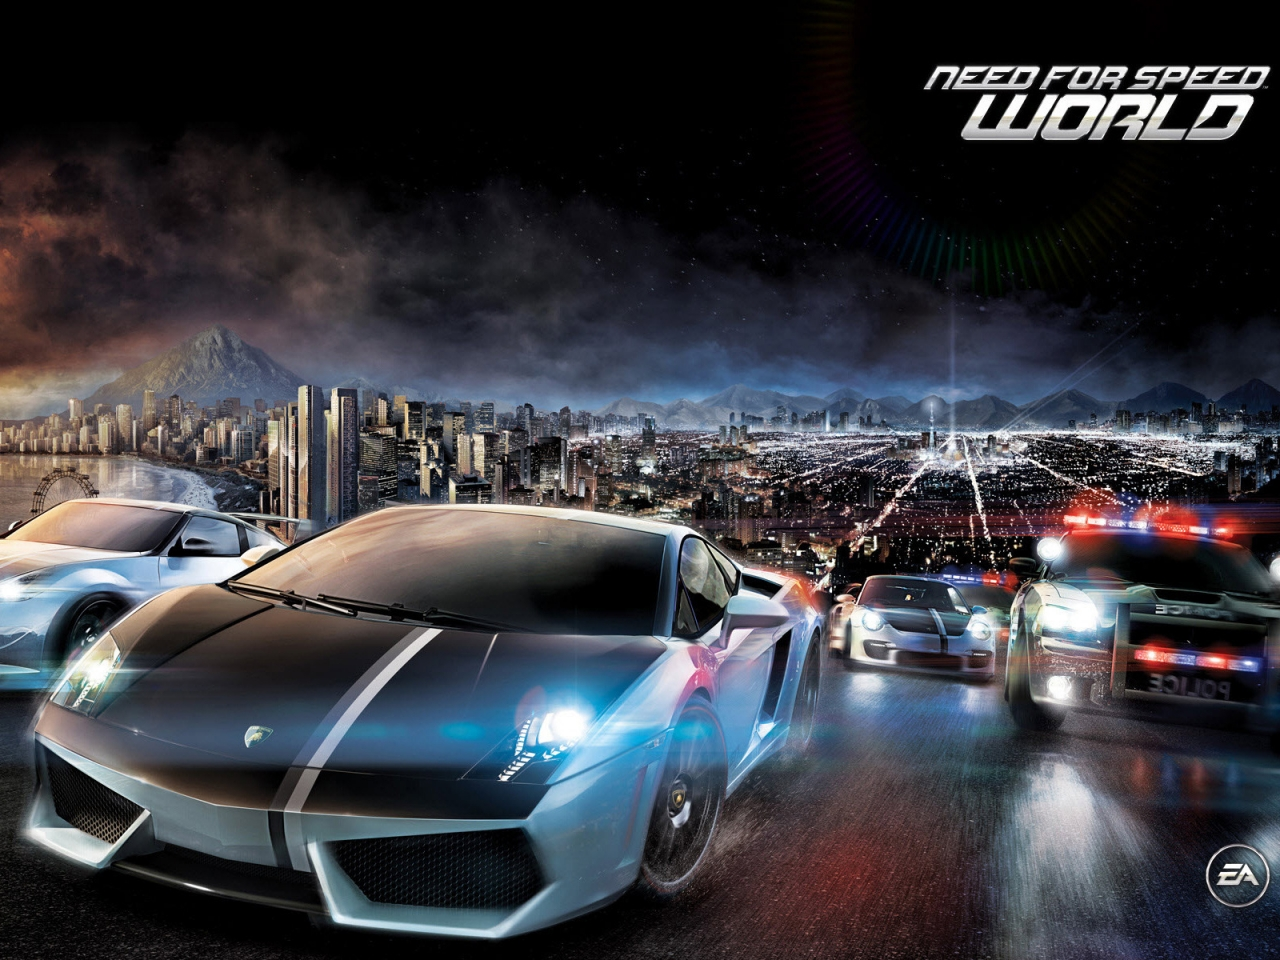 Need for Speed World for 1280 x 960 resolution